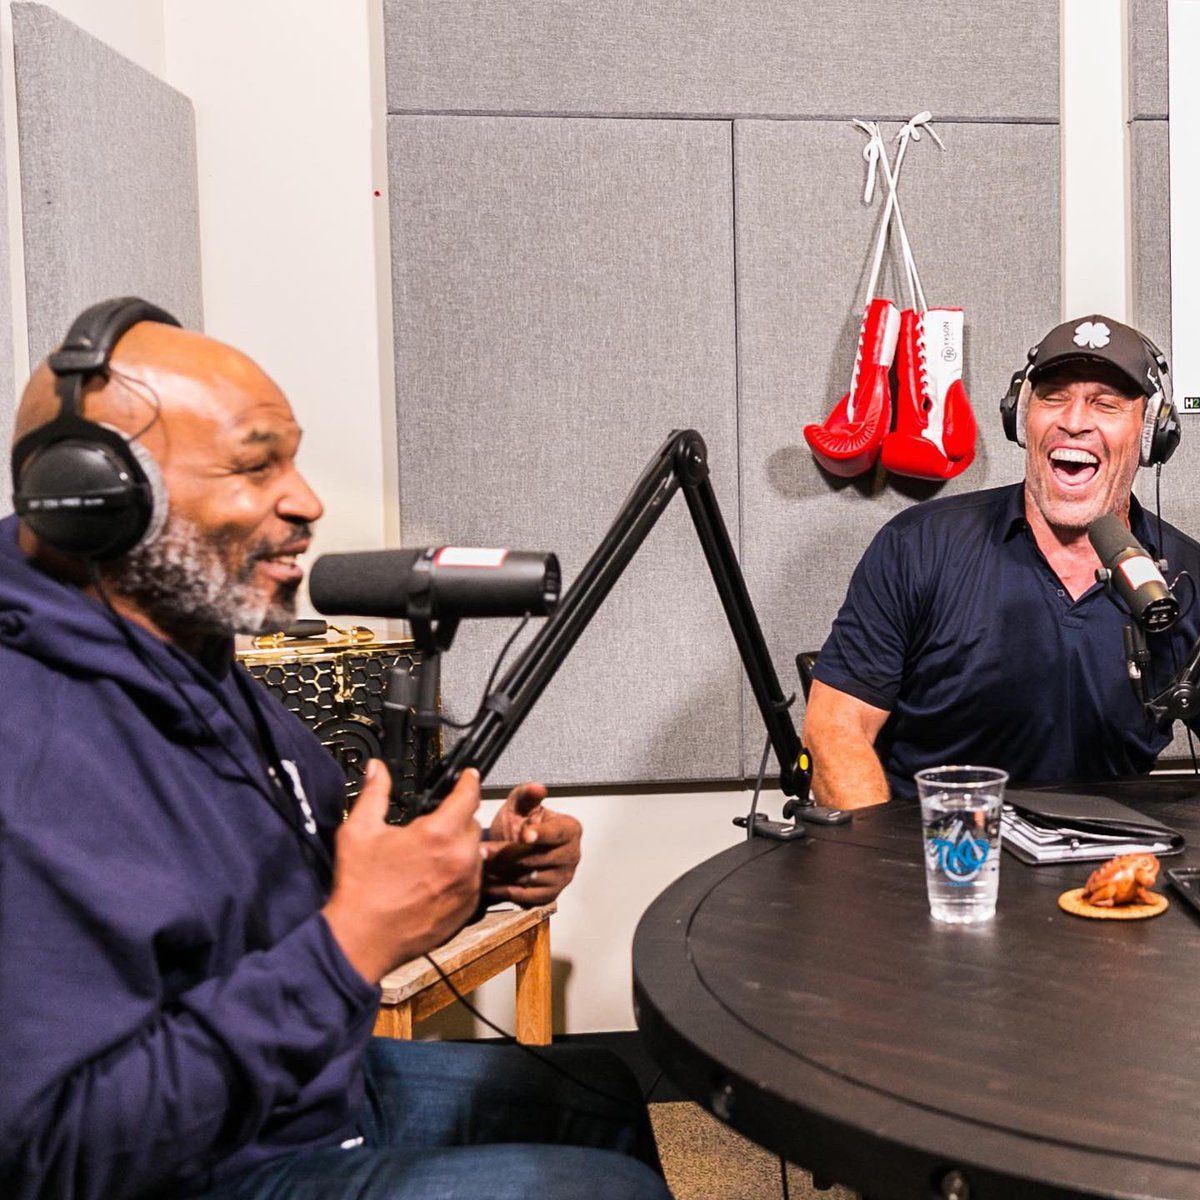 Had a great time with @TonyRobbins yesterday filming @hotboxinpodcast https://t.co/Gp0ZMo92EU